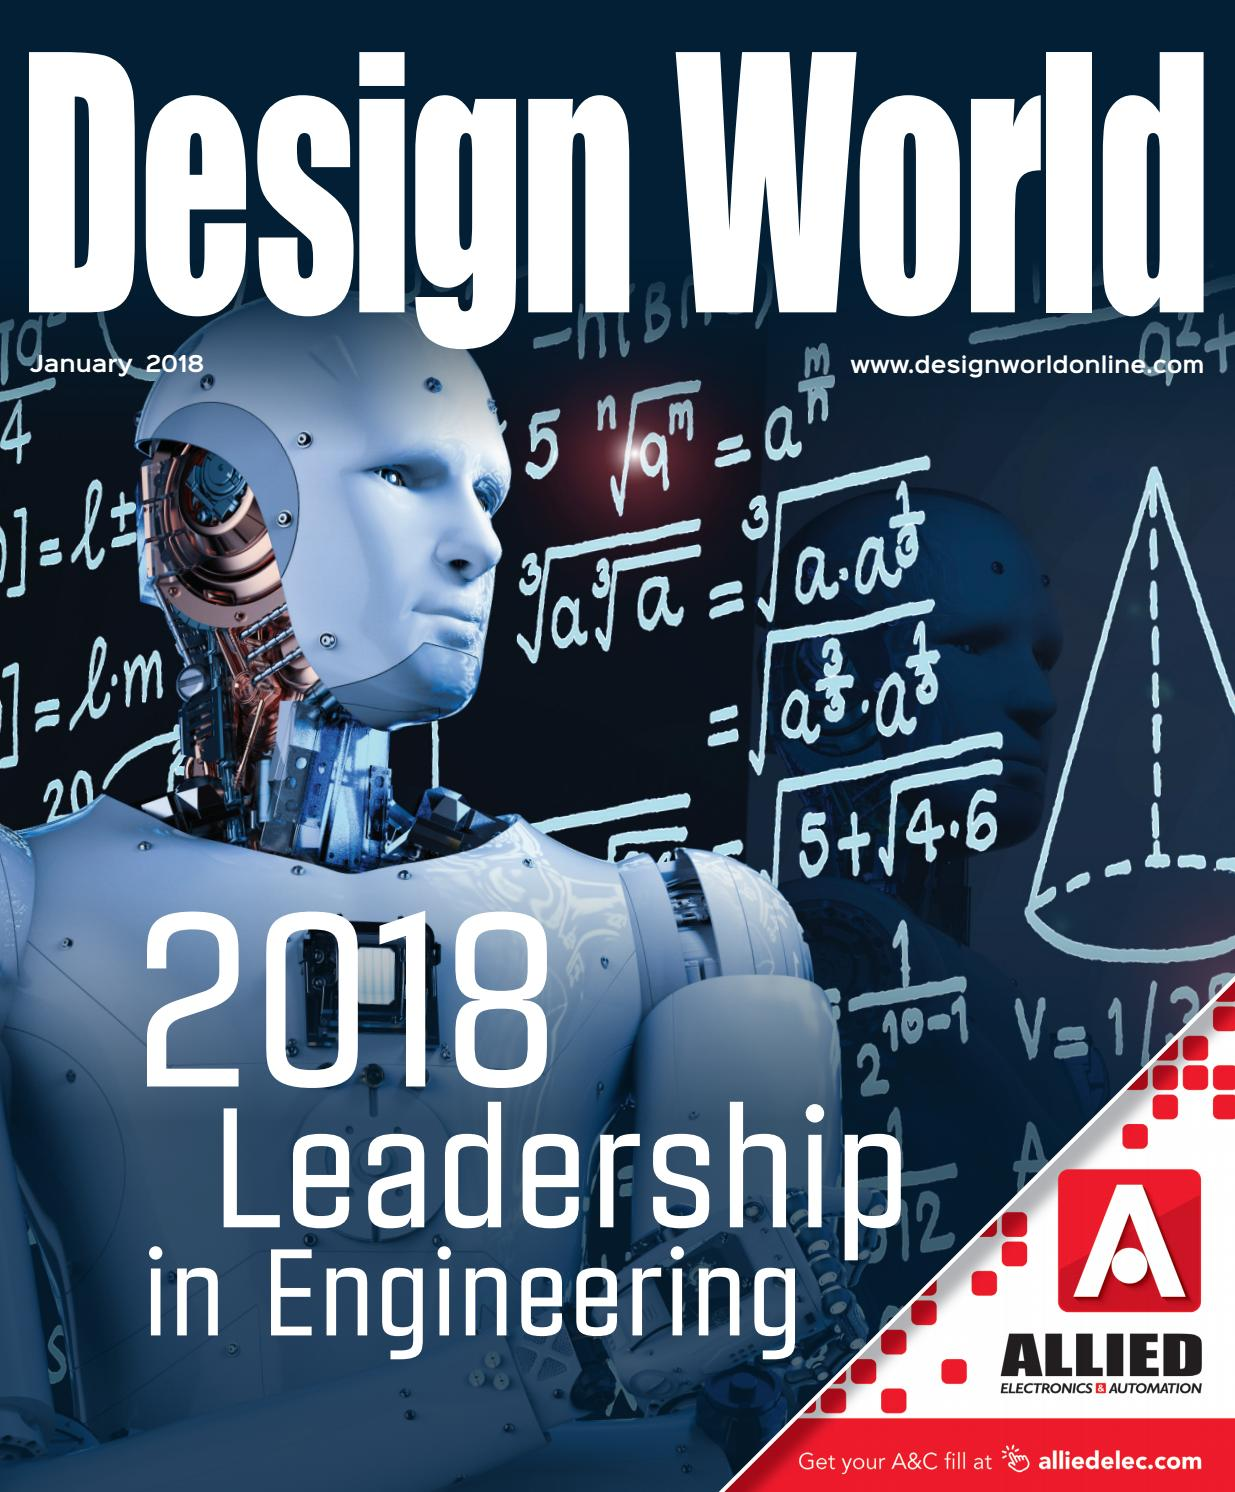 Design World January 2018 Main Issue By Wtwh Media Llc Issuu Let39s A Circuit With Halfbridge Converter Click On Image To